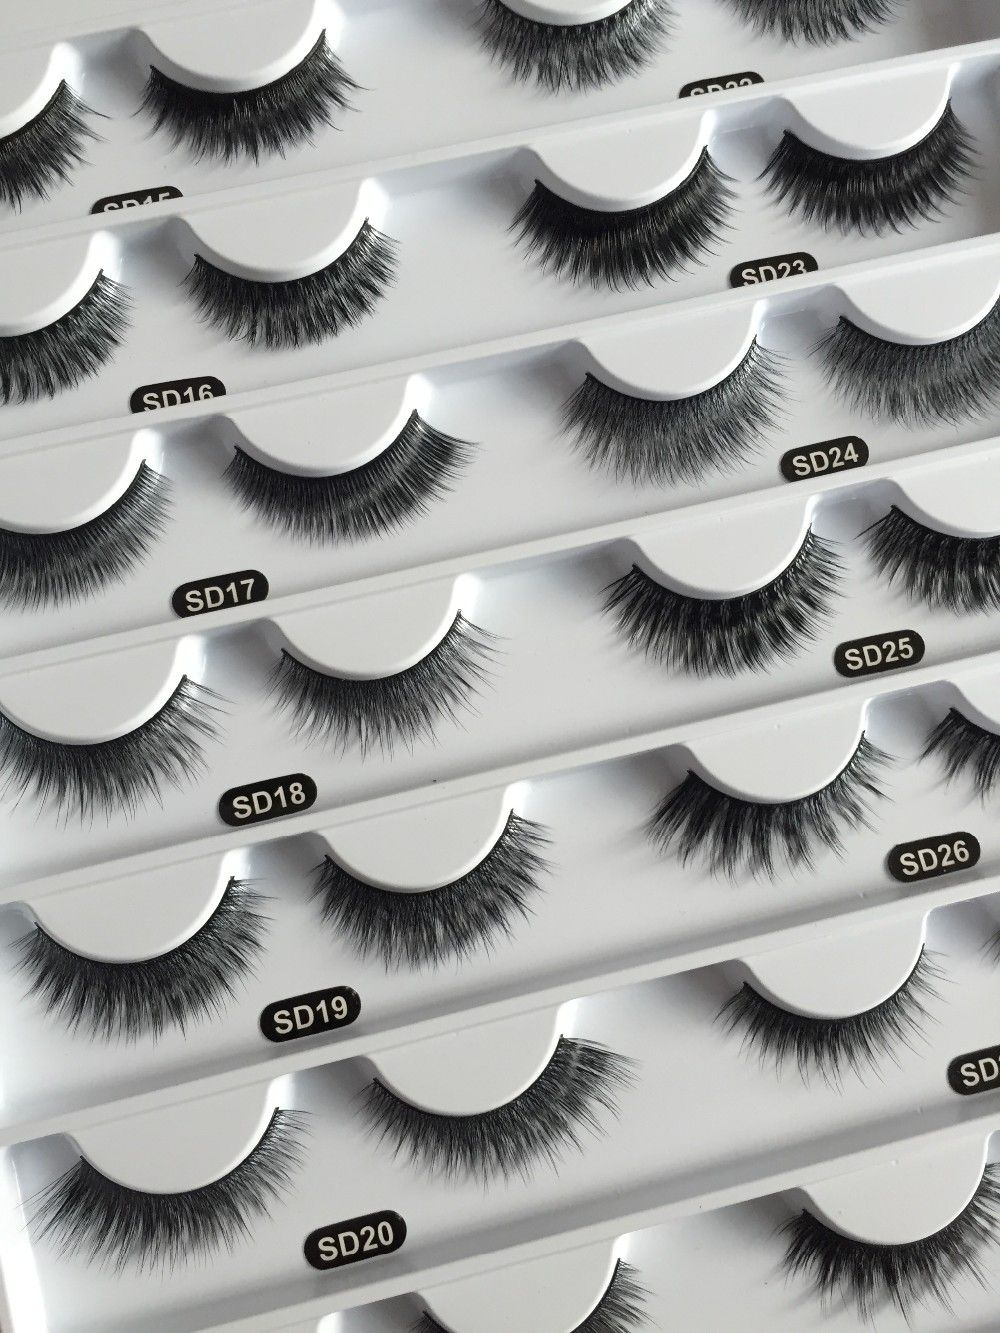 da8880d8f91 Wholesale premium 3D silk lashes faux mink lashes customized package OEM,  View wholesale price, 3D silk lashes Product Details from Jixi Golden Color  Beauty ...